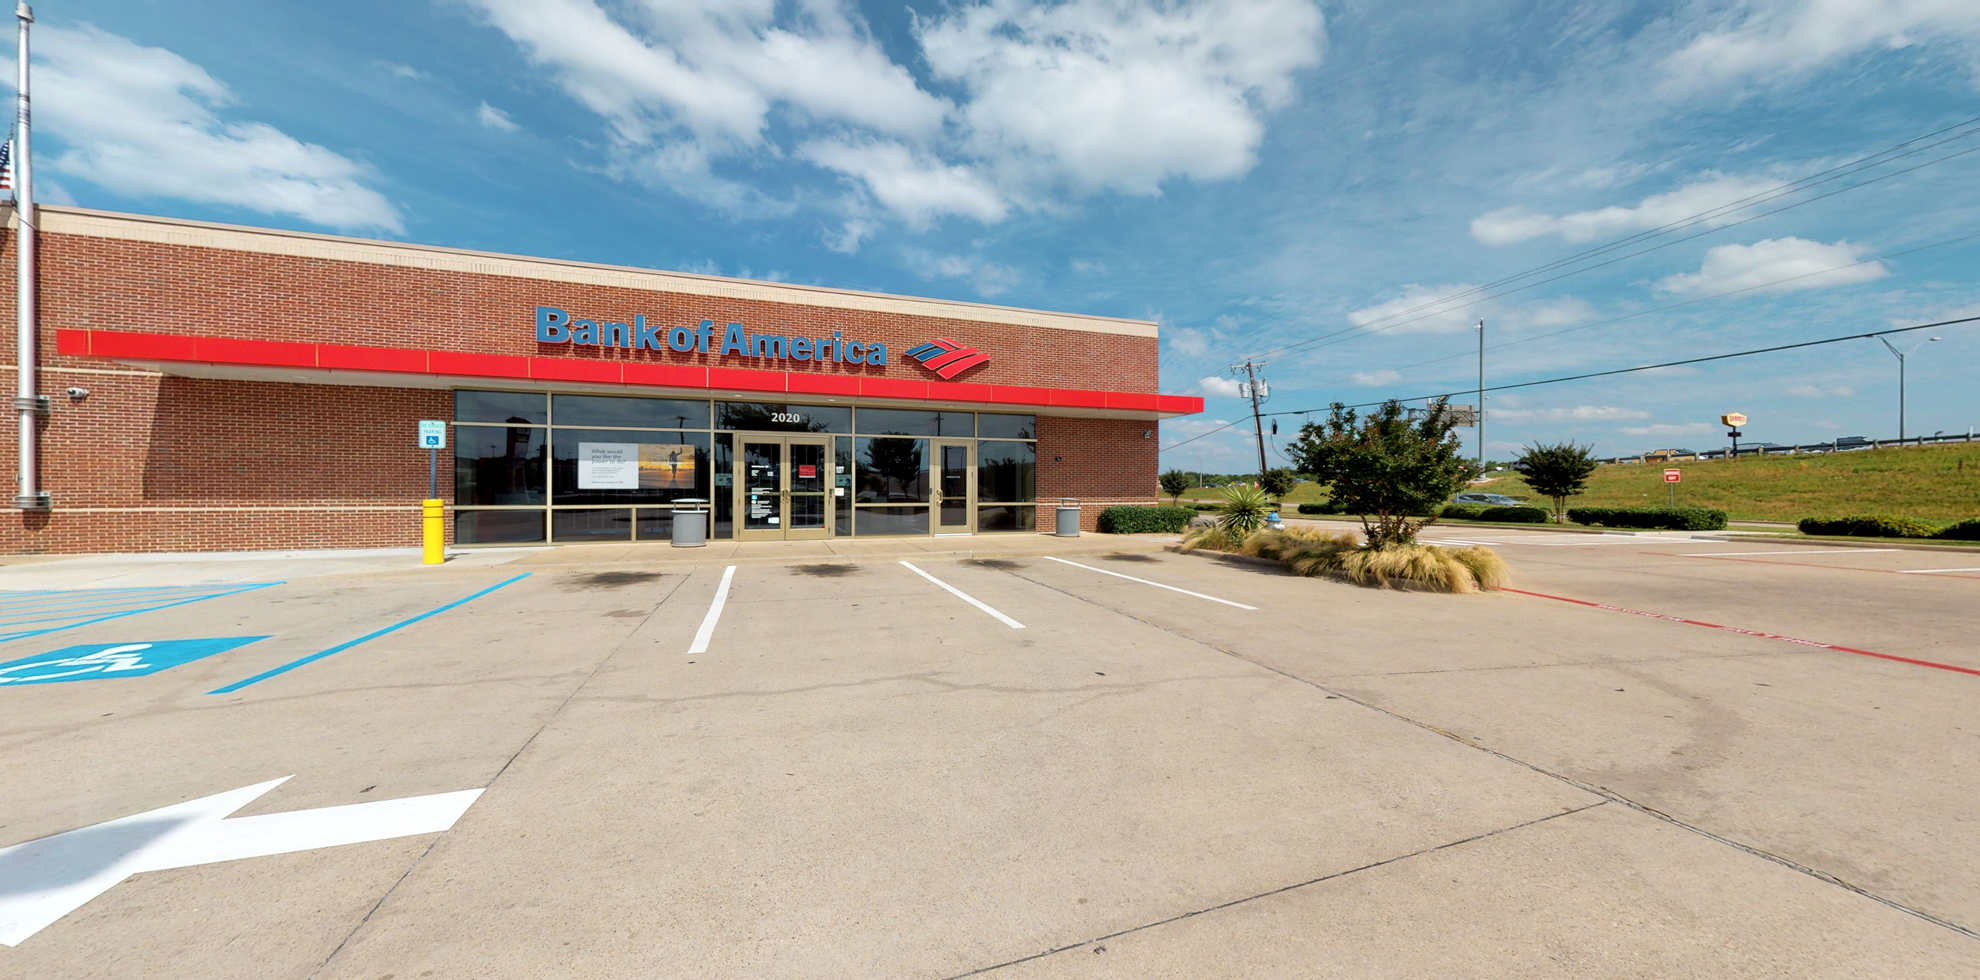 Bank of America financial center with drive-thru ATM | 2020 N Belt Line Rd, Mesquite, TX 75150